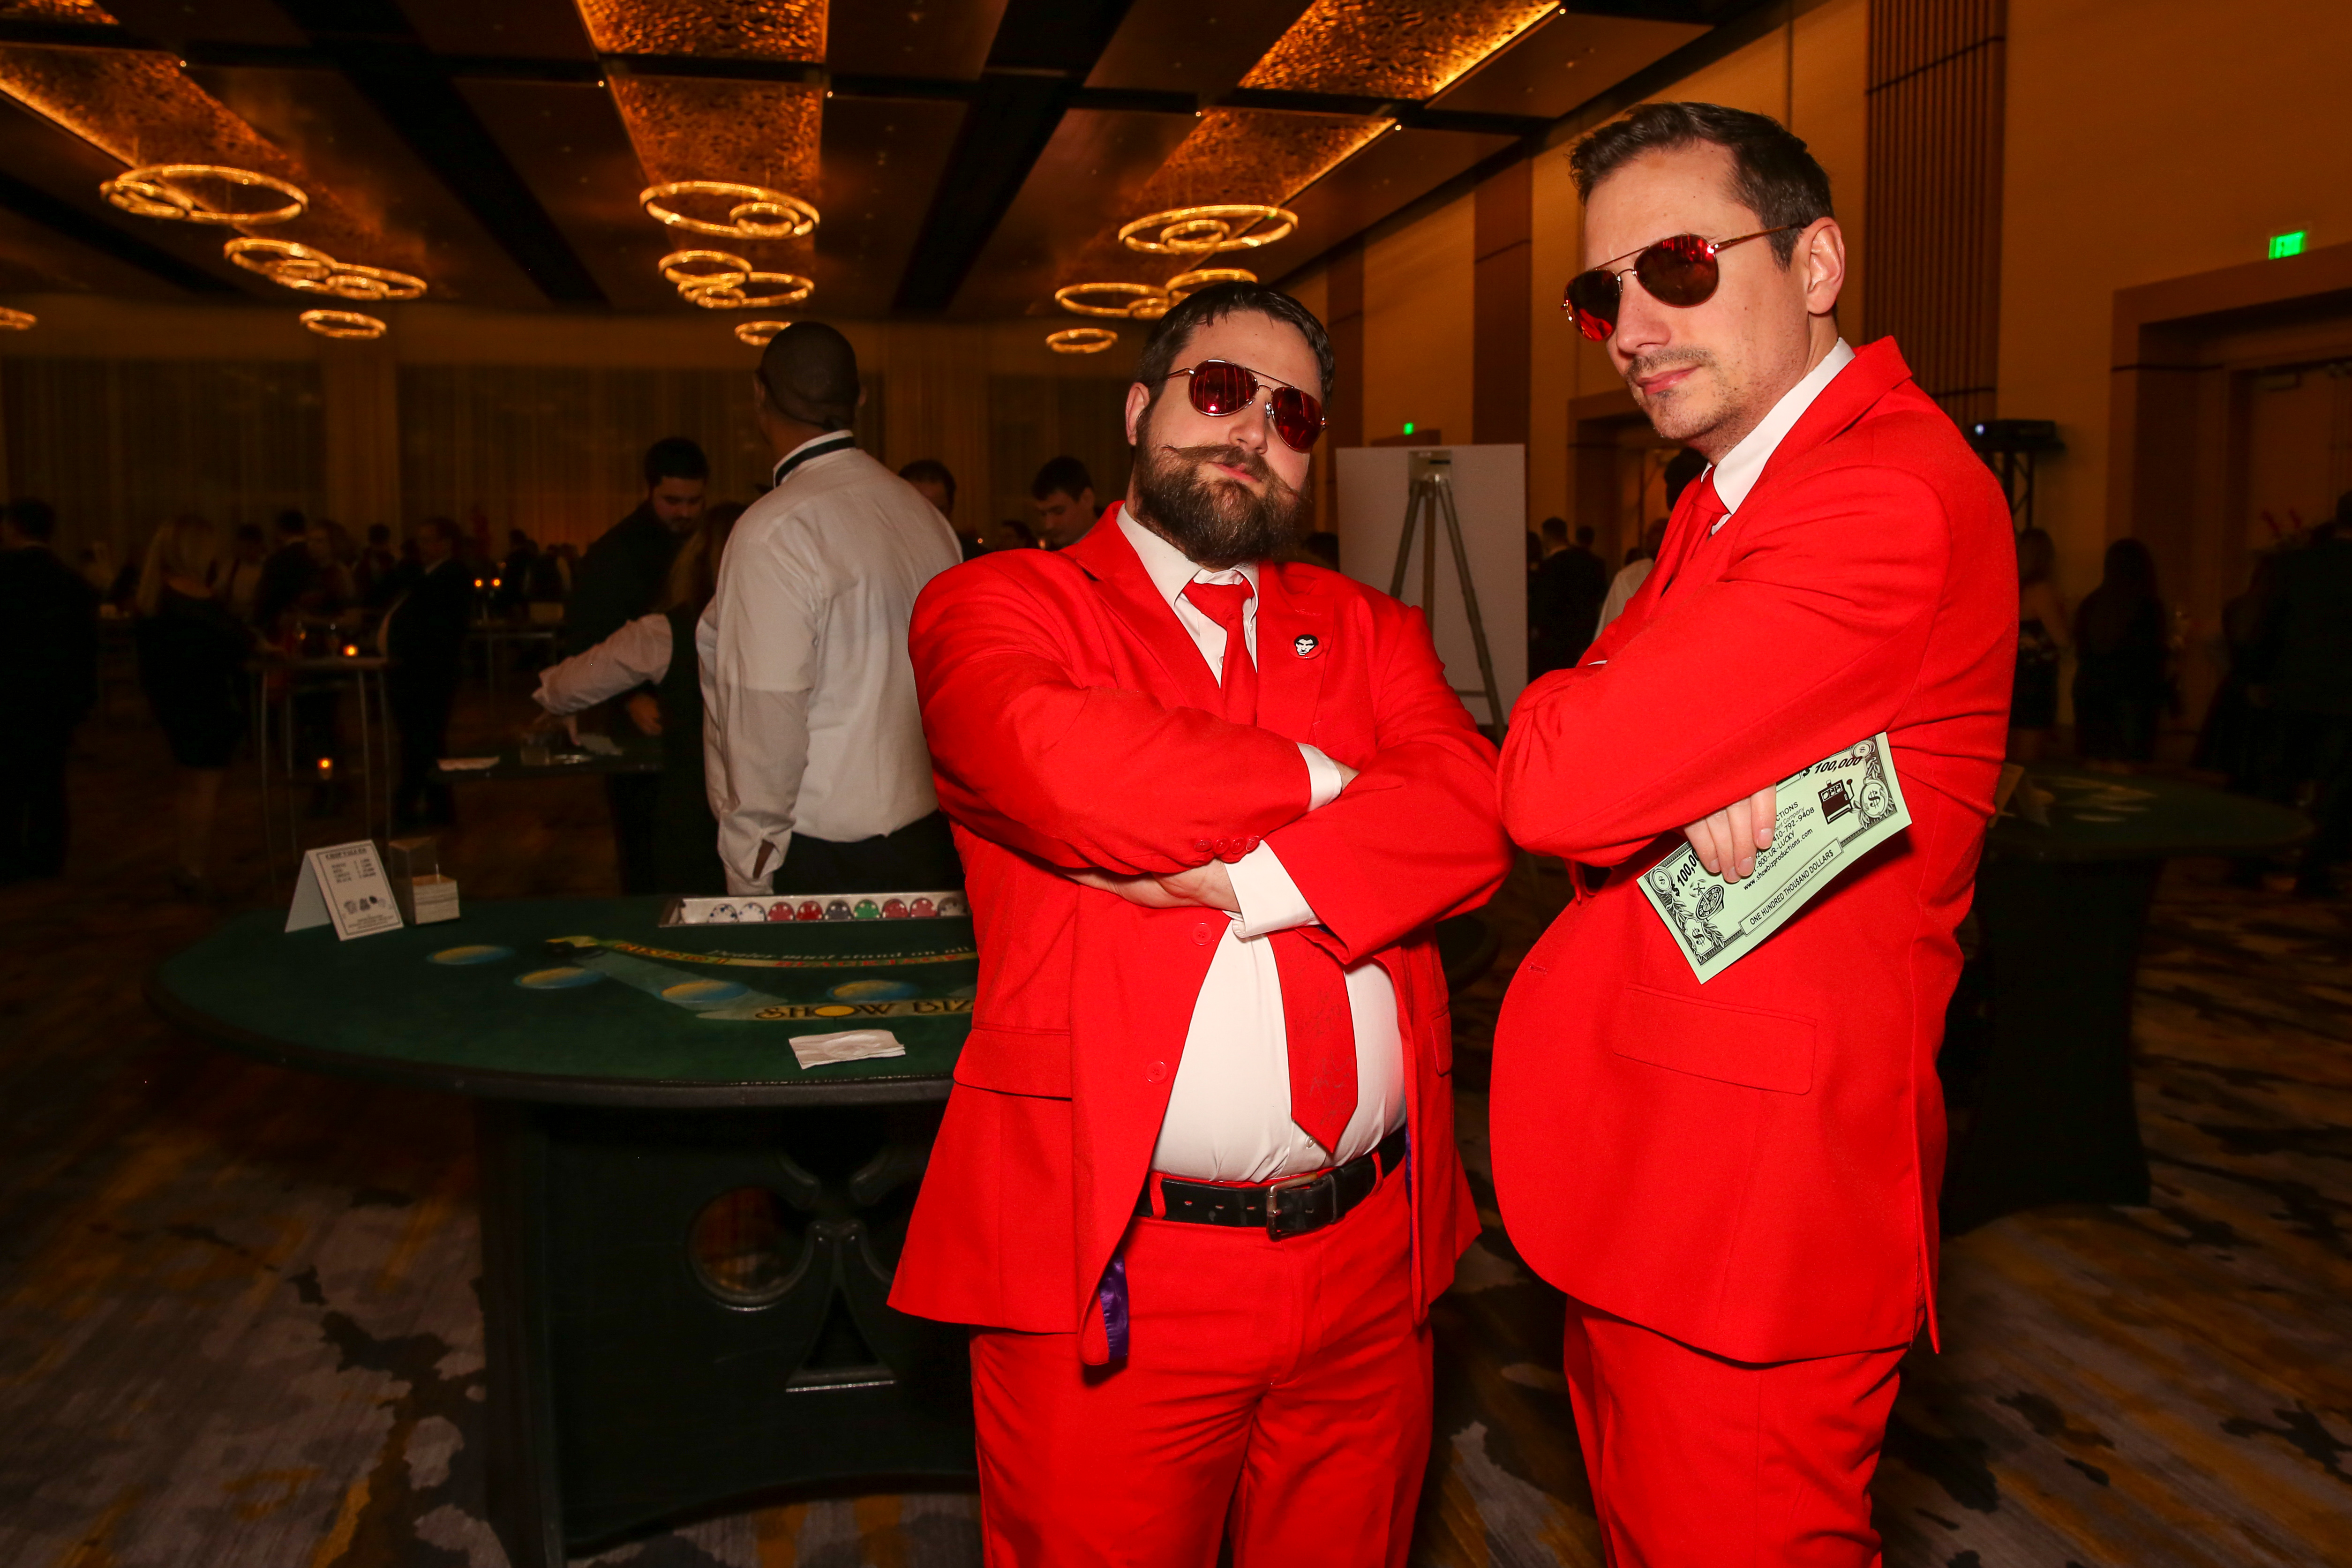 Players from the Washington Capitals mingled with fans at their annual Casino Night, which was held at MGM National Harbor, on January 4. The proceeds of the evening  went to charity and gave fans a chance to get up close and personal with their favorite hockey players over the poker table. (Amanda Andrade-Rhoades/DC Refined)<p></p>